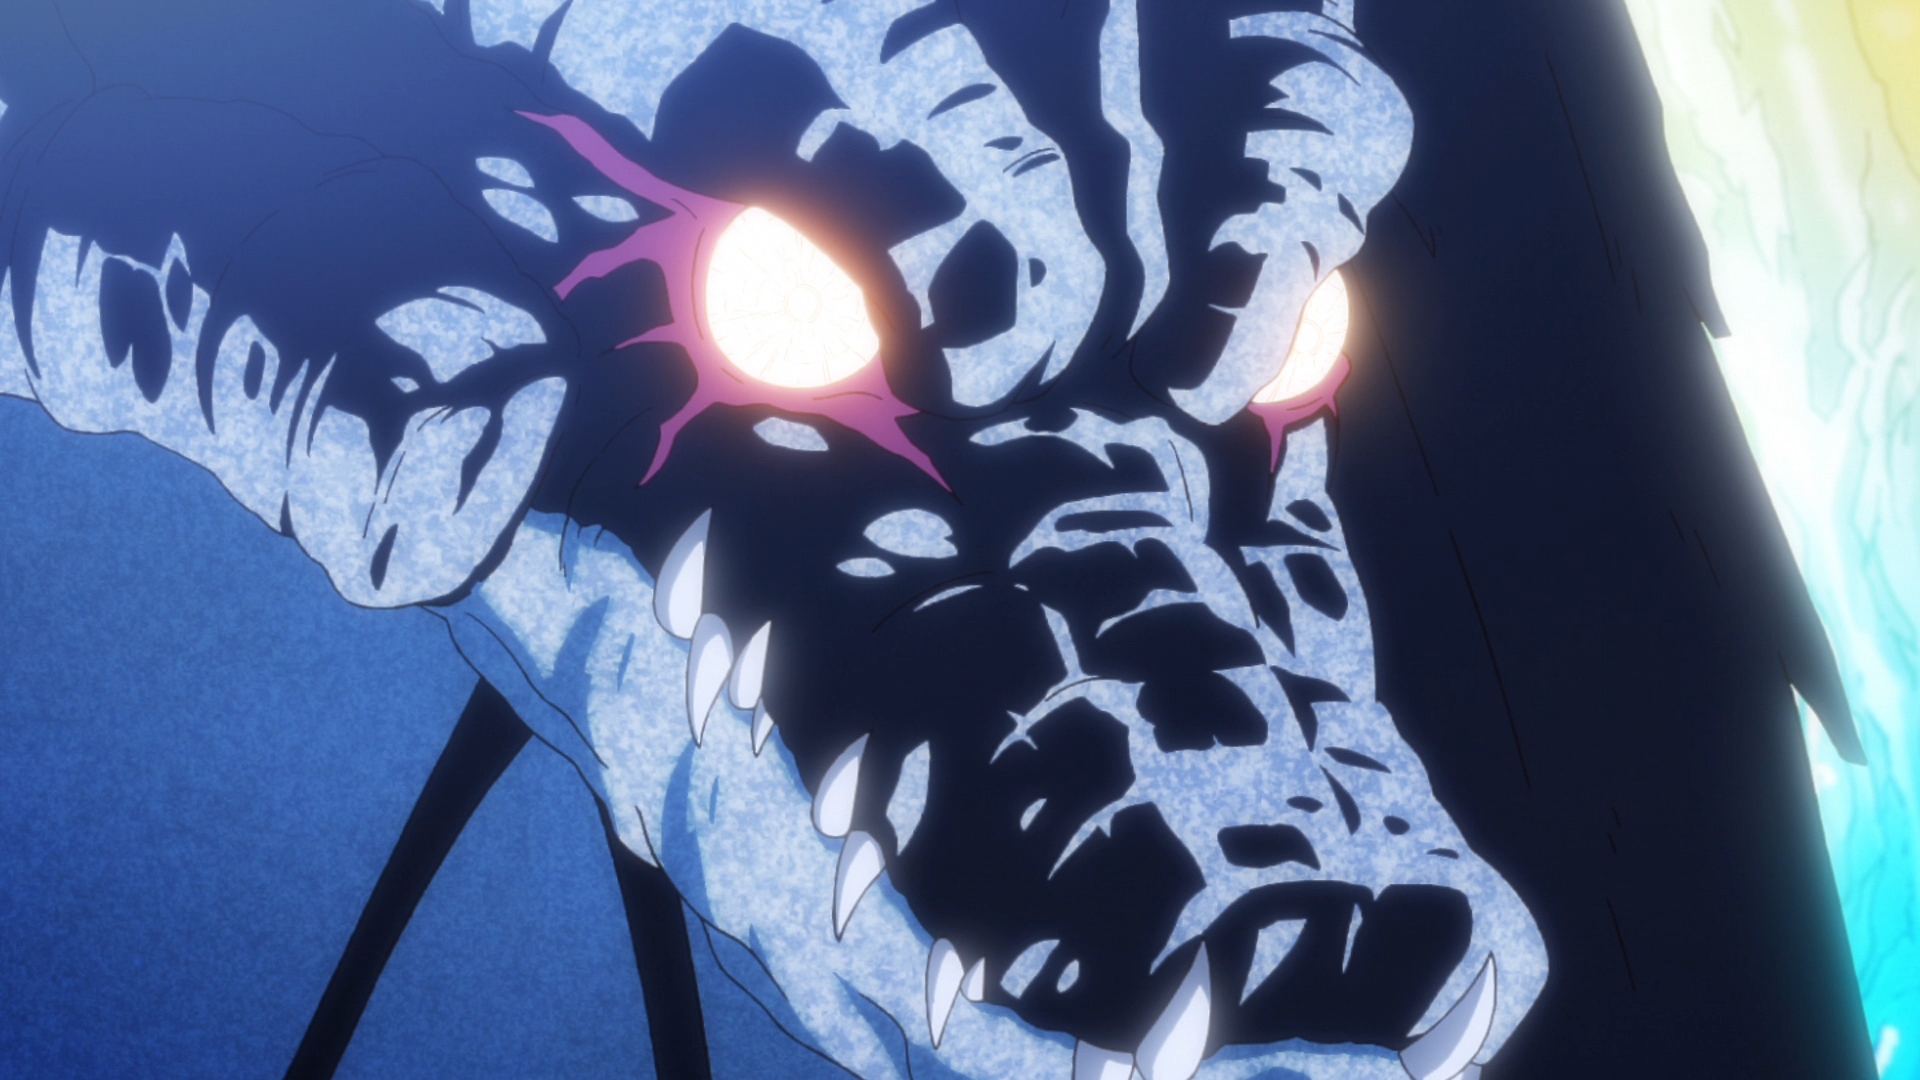 Veldora the Storm Dragon, a primordial being overflowing with magical power, prepares to have lovely chat with the as-yet-unnamed Rimiru in a scene from the That Time I Got Reincarnated as a Slime TV anime.